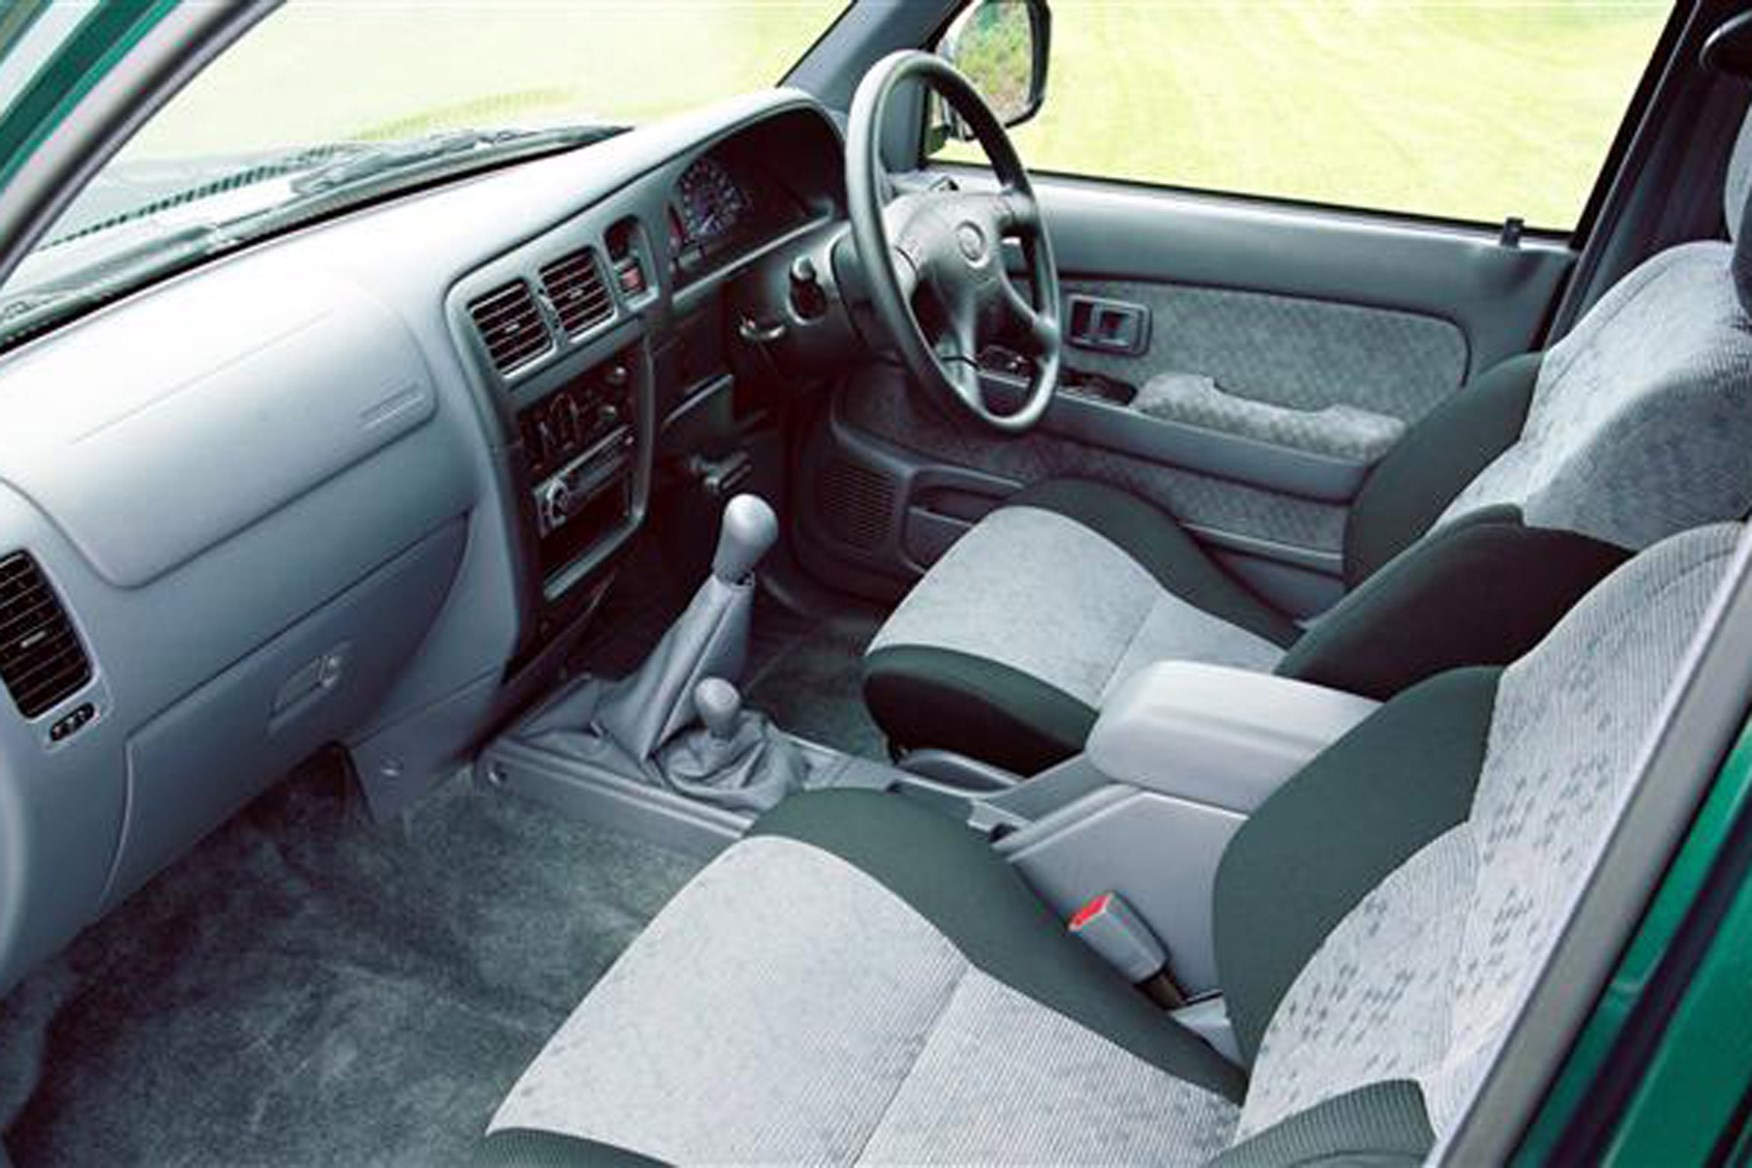 Toyota Hilux review on Parkers Vans - interior